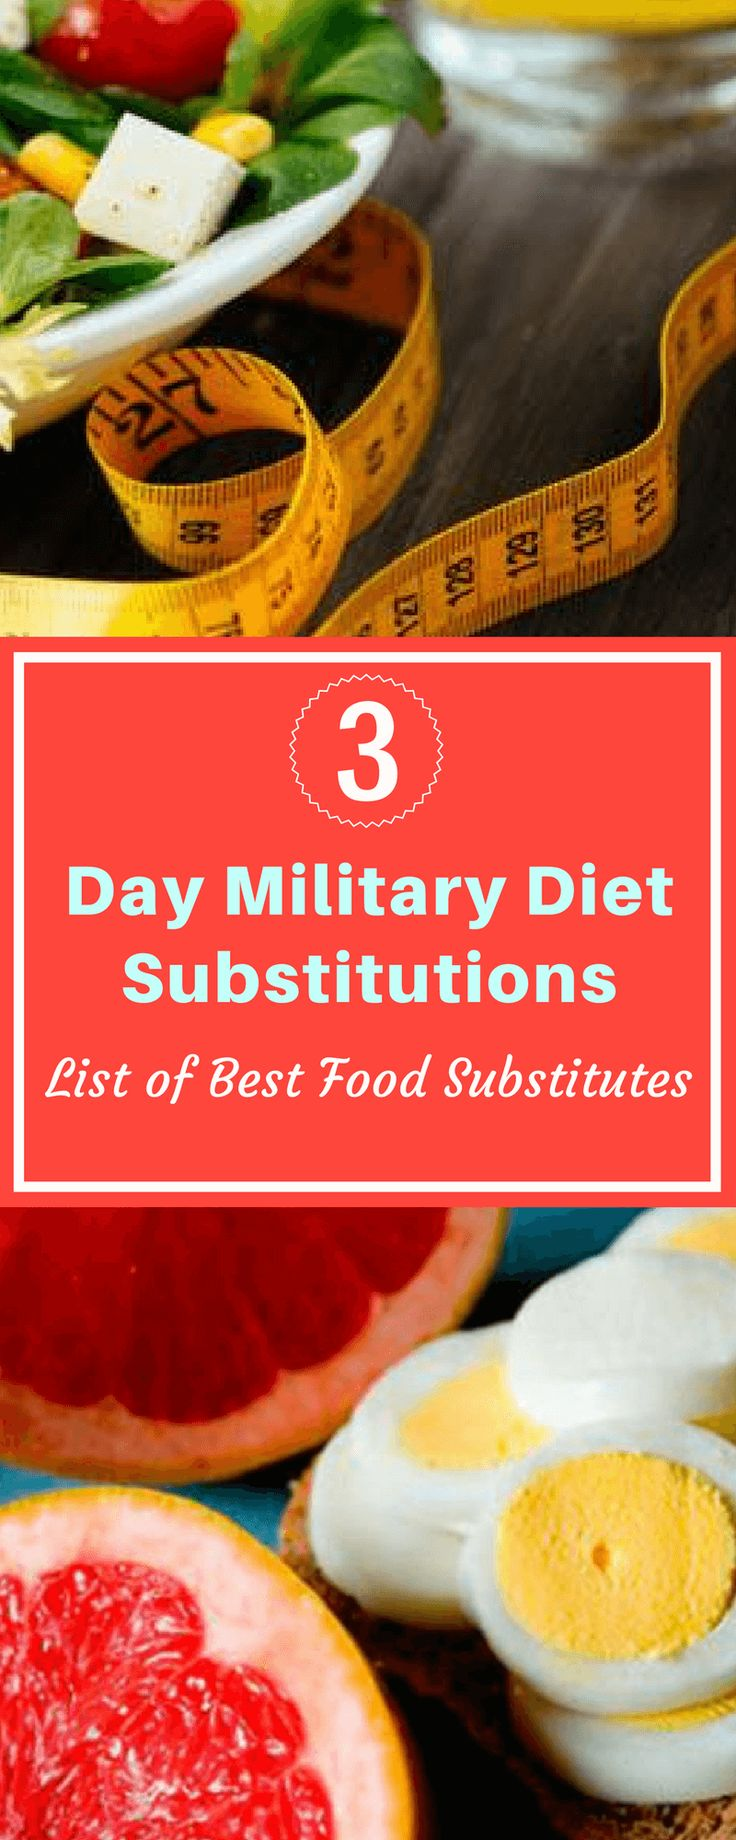 3 Day Military Diet Substitutions: List of Best Food Substitutes | Home Remedy Nation